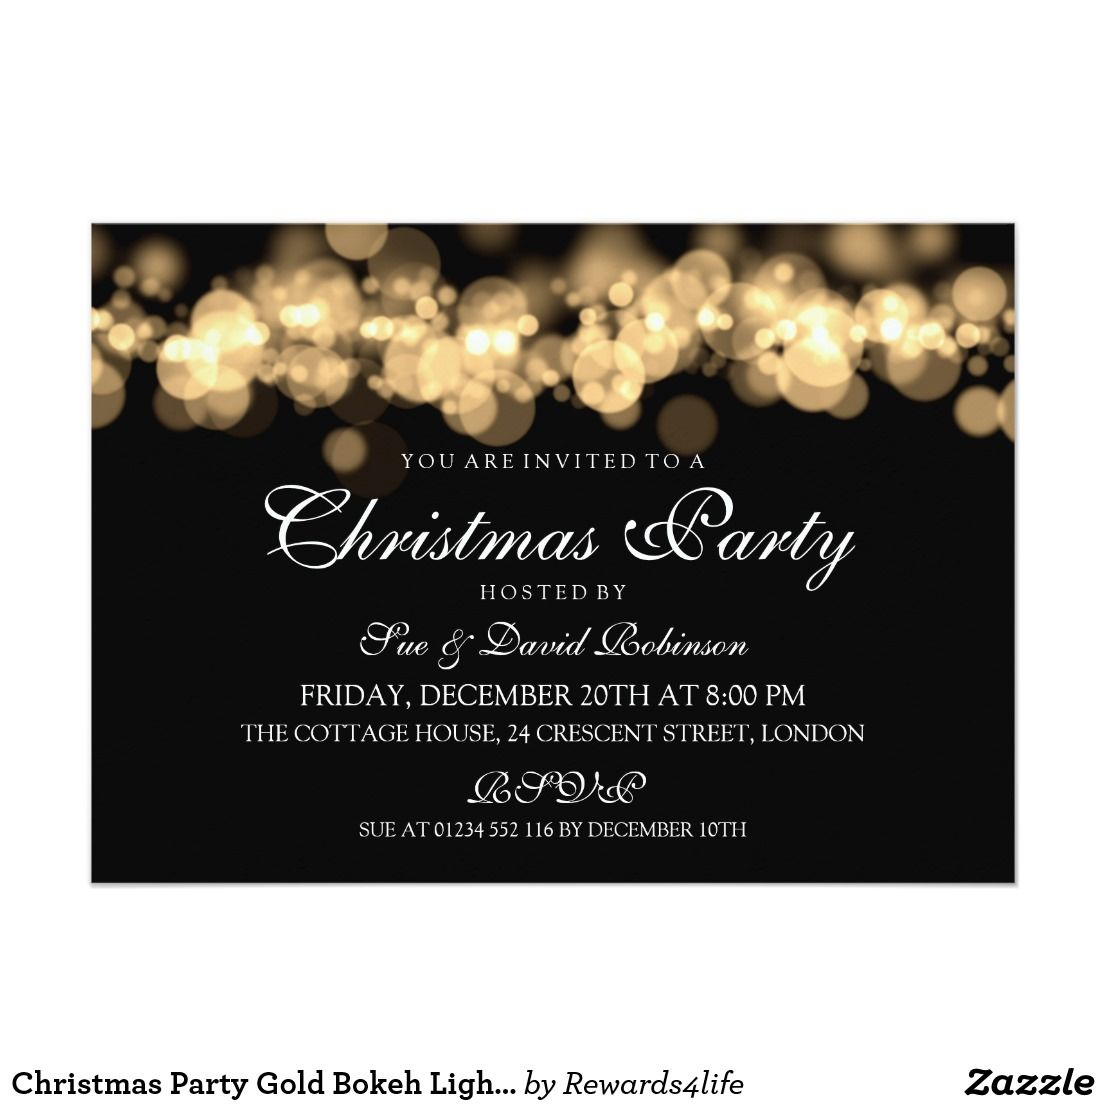 Christmas Party Gold Bokeh Lights Card Party Invitation Templates - Party invitation template: elegant christmas party invitation template